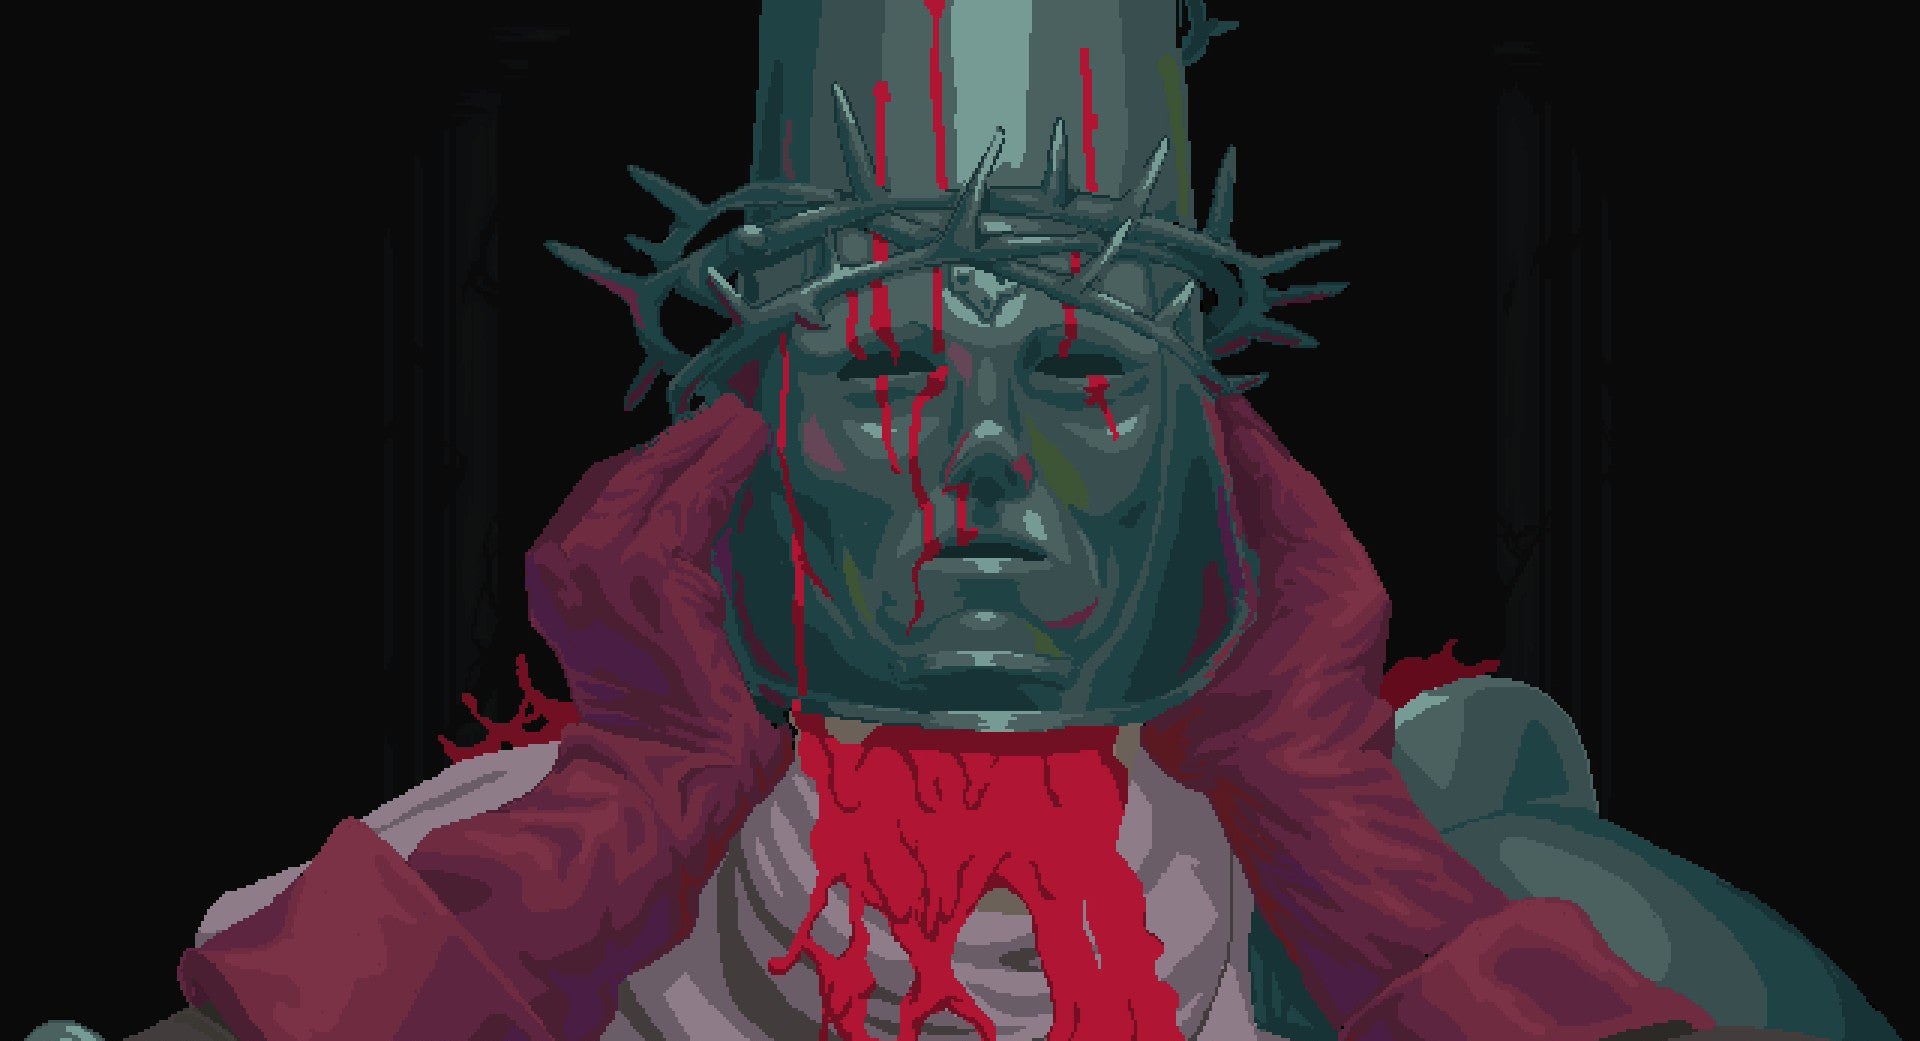 Gothic Platformer Offers Brutal Combat With A Side Of Religious Trauma